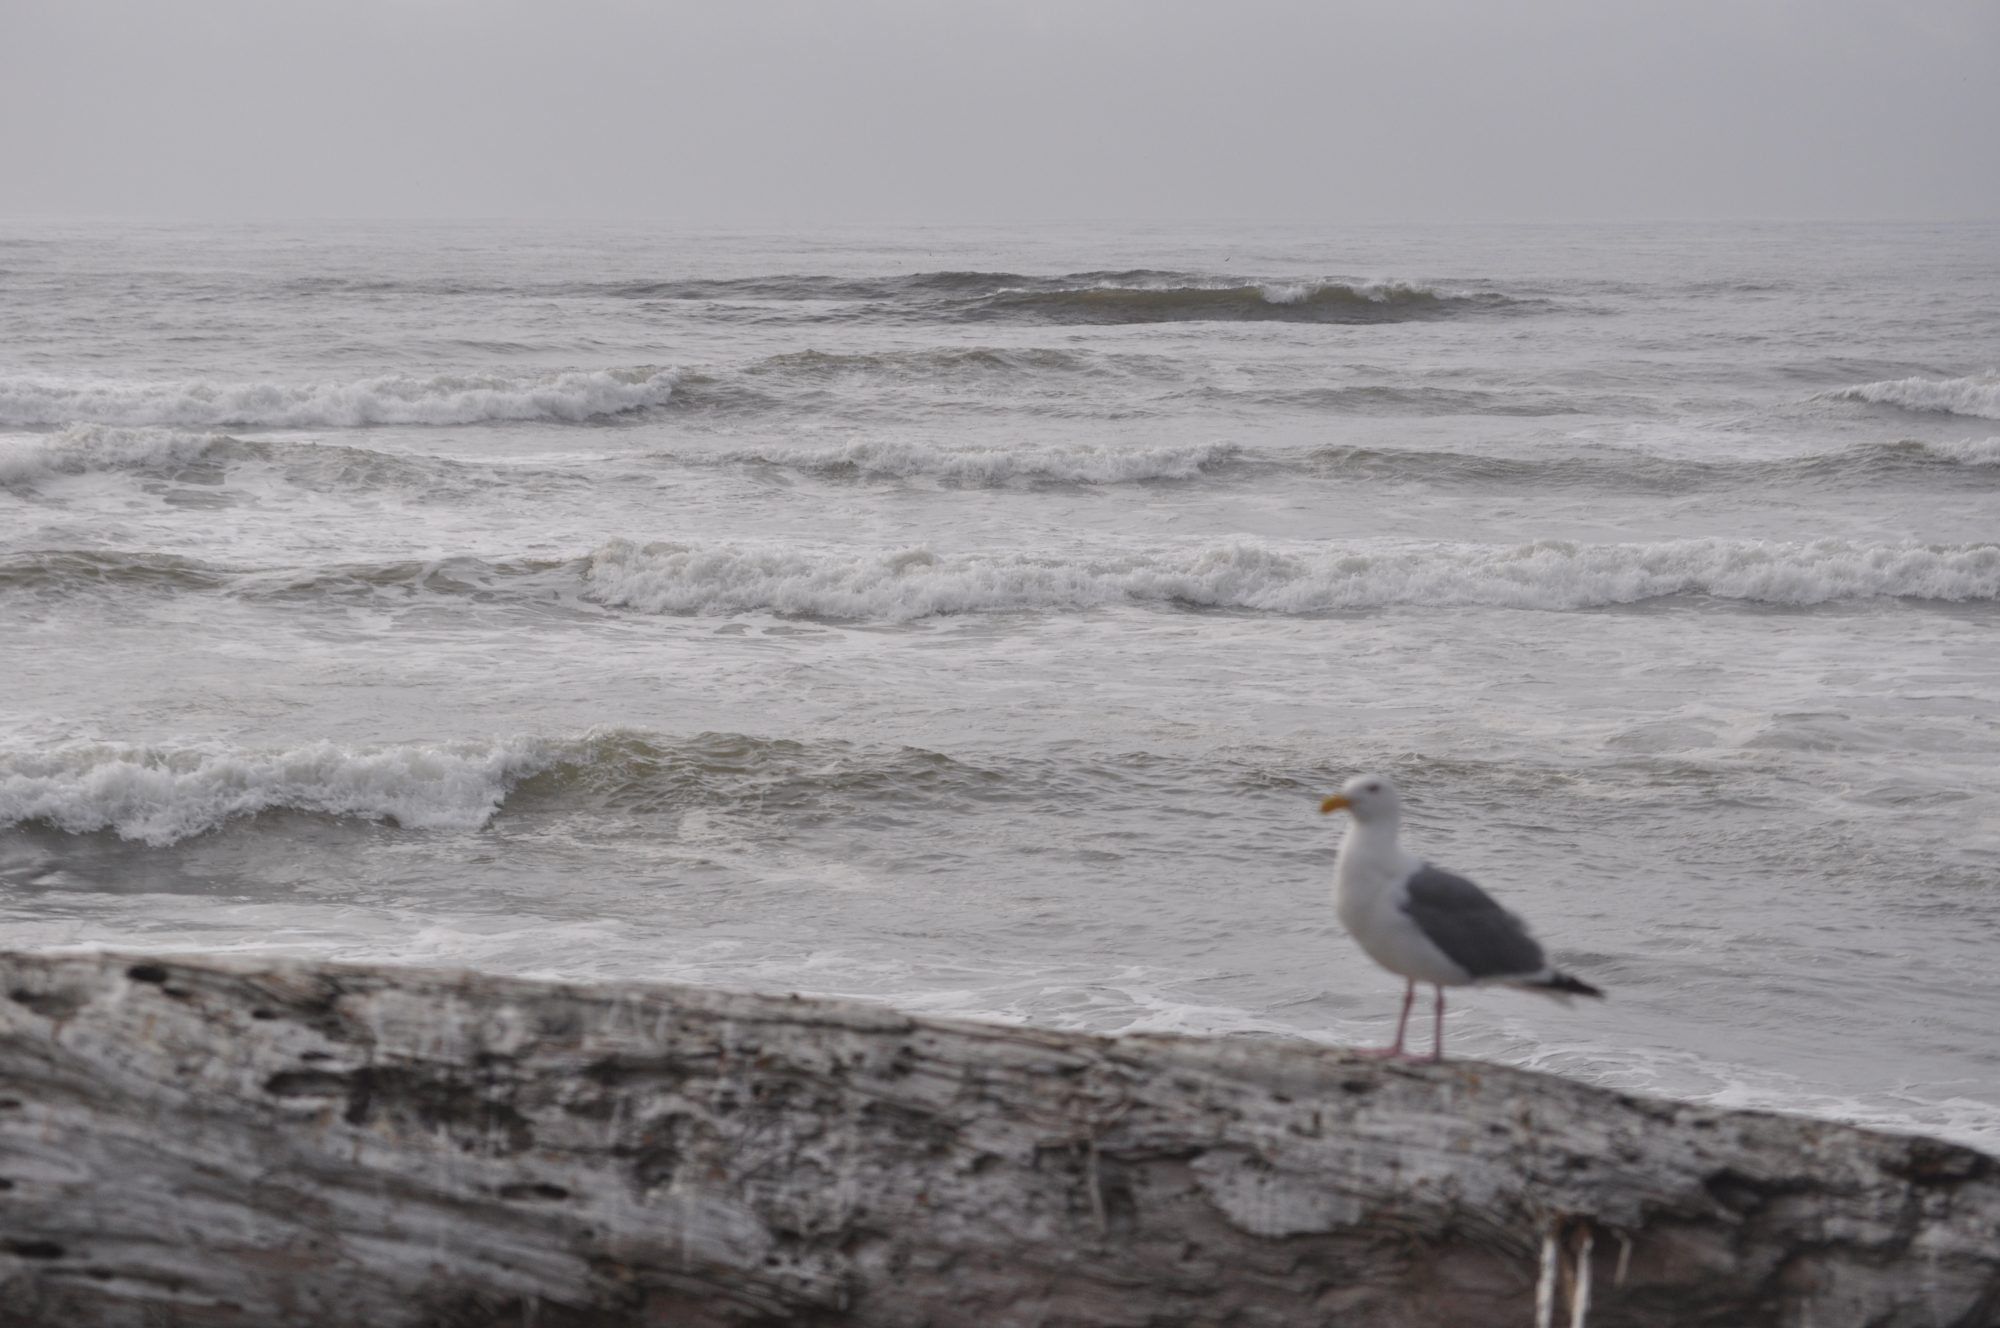 A single shore bird enjoys the sites and sounds of Seaside's,